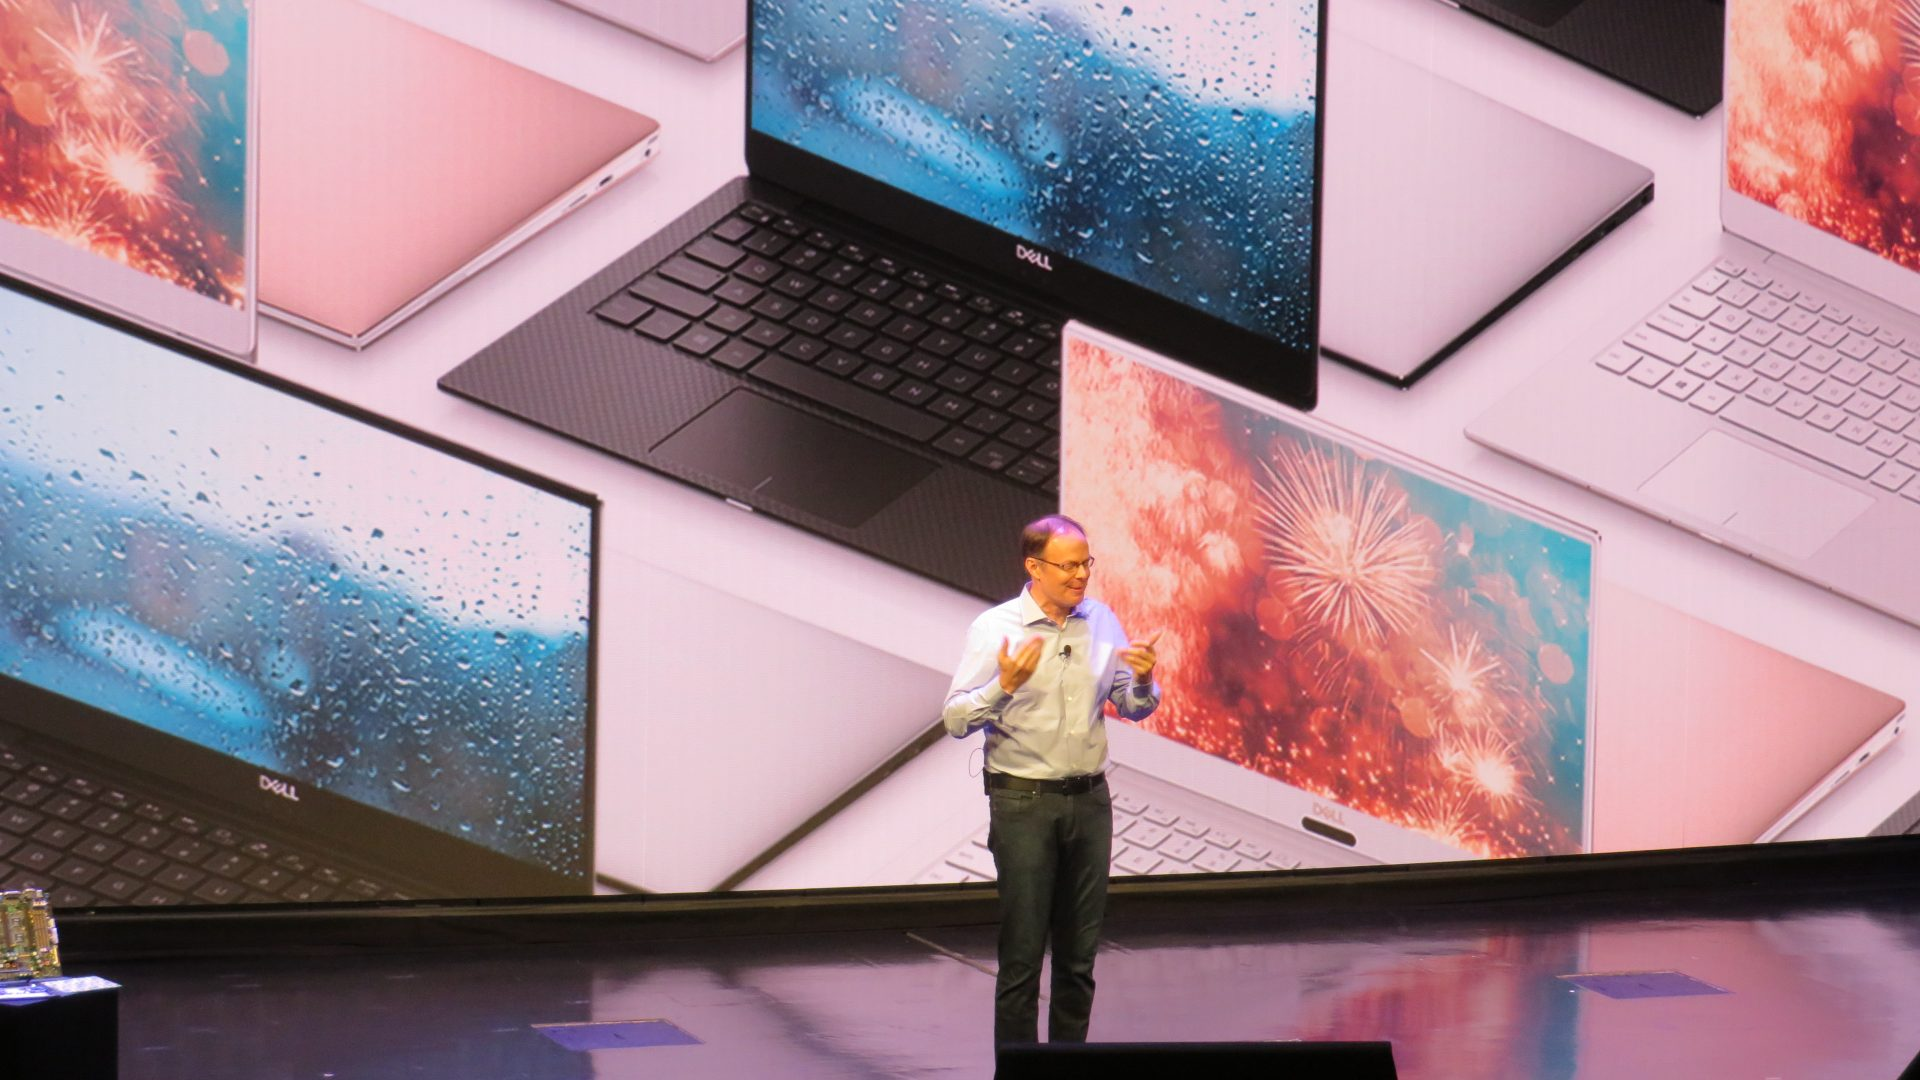 DELL's Kaby Lake-G Powered XPS 15 has a MagLev Keyboard